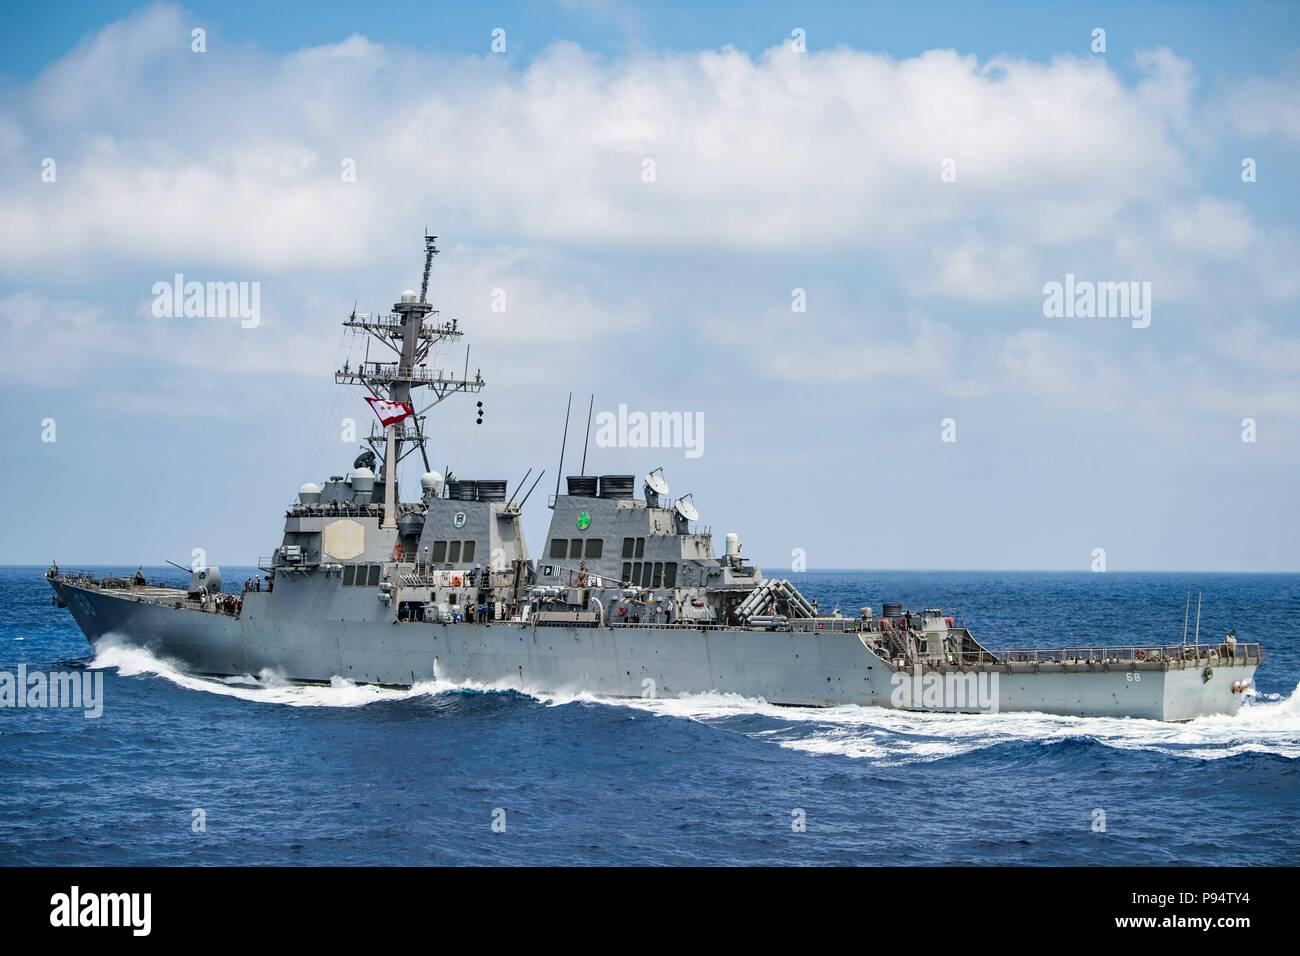 180625-N-PY230-1256 MEDITERRANEAN SEA (June 25, 2018) The guided-missile destroyer USS The Sullivans (DDG 68) transits the Mediterranean Sea. The Sullivans is conducting naval operations in the U.S. 6th Fleet area of operations in support of U.S. national security interests in Europe. (U.S. Navy photo by Senior Chief Intelligence Specialist Matt Bodenner/Released) Stock Photo